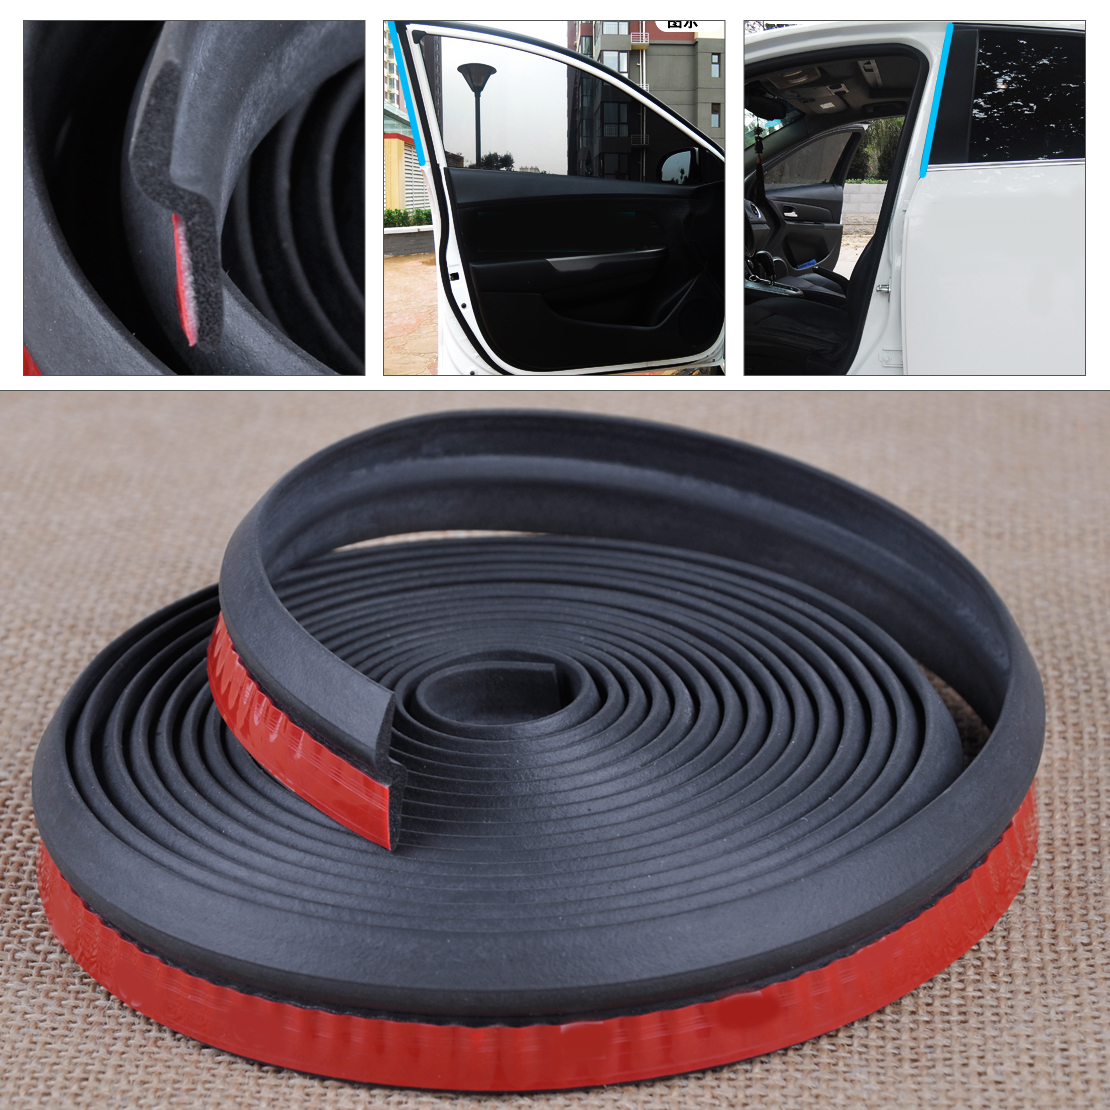 CITALL 8M/4M/5M D/P/Z/B Shape Car Door Edge Rubber Seal Weatherstrip Hollow Soundproof Dustproof Moulding Trim Protector cawanerl car sealing strip kit weatherstrip rubber seal edging trim anti noise for nissan almera march micra note pixo platina